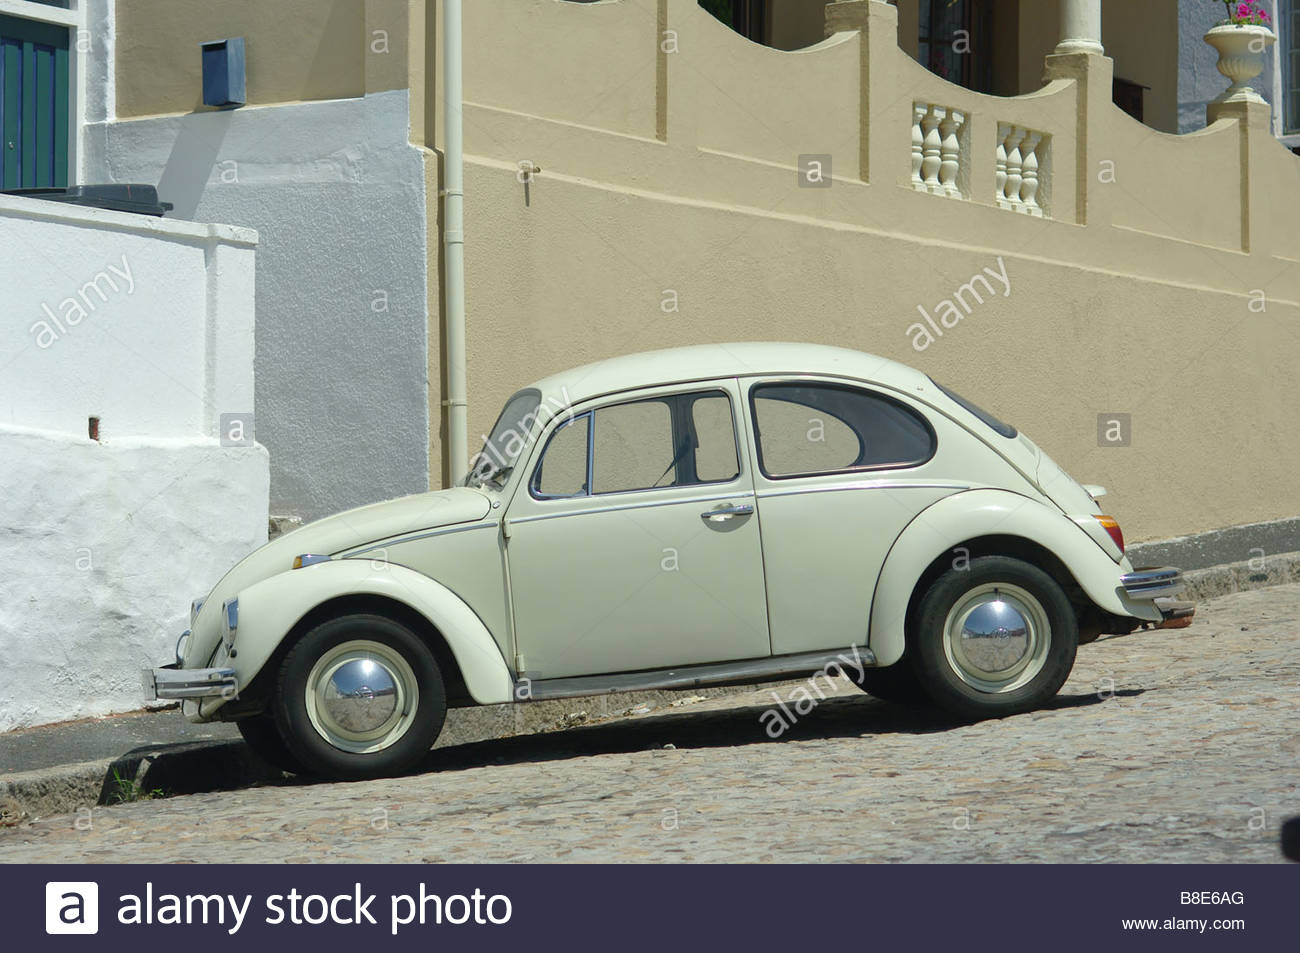 Old Vw Bug Vw Beetle Volkswagen White Stock Photo Alamy